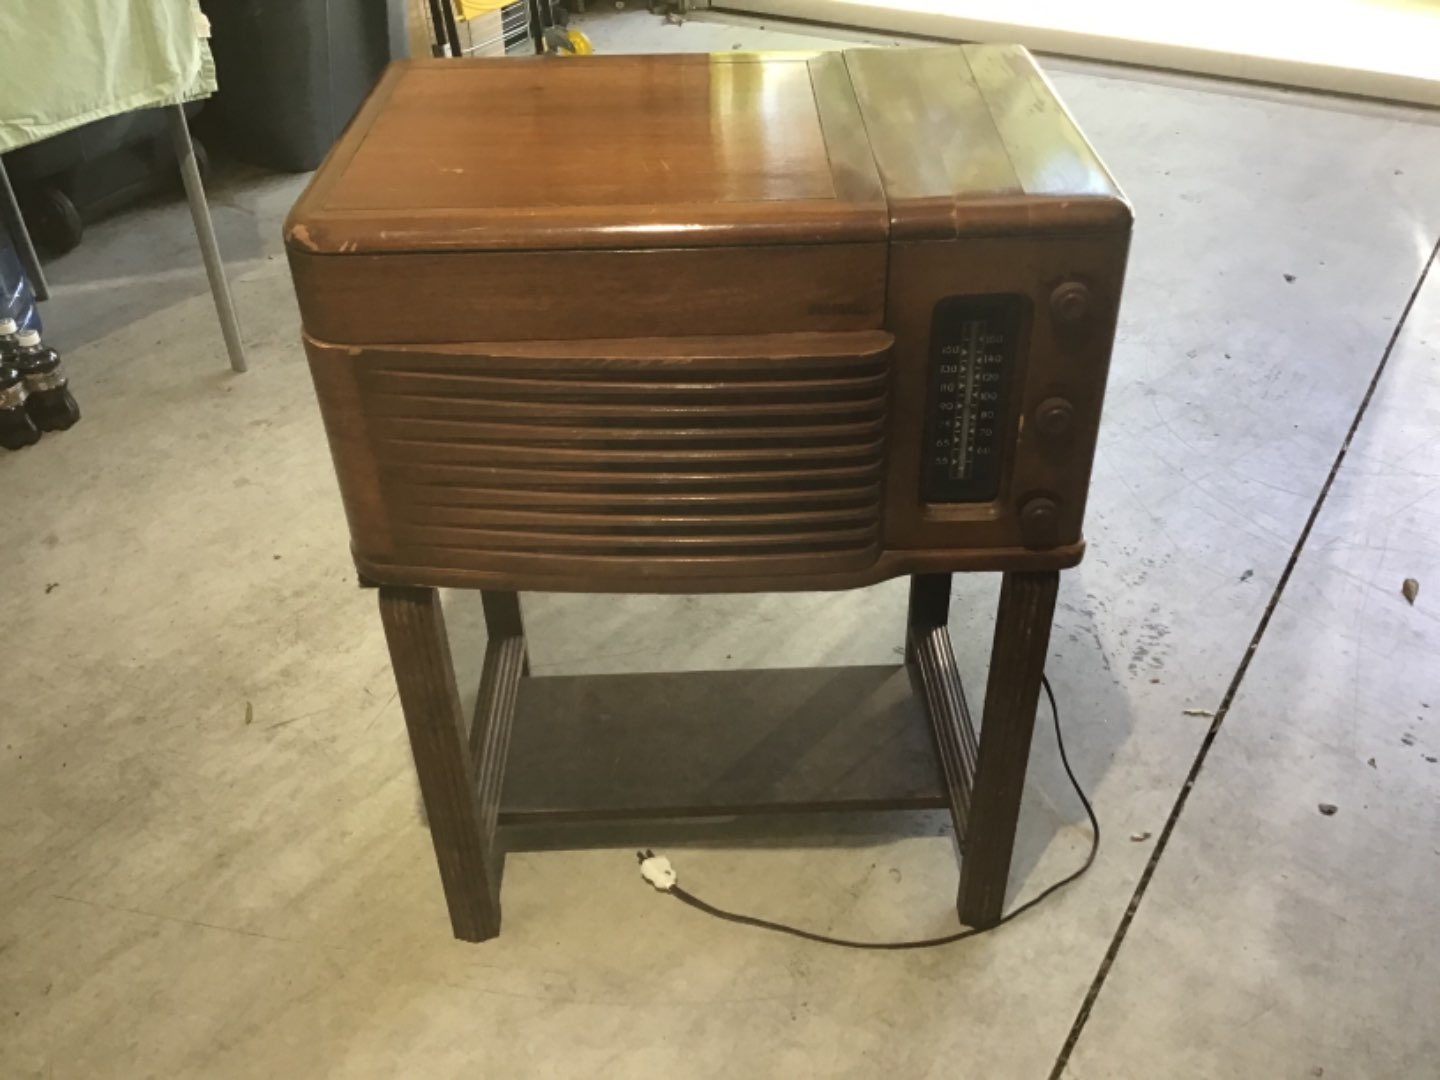 Lot # 177 Awesome Antique (1946) PHILCO TABLE MODEL RADIO-PHONOGRAPH w/Original Table!